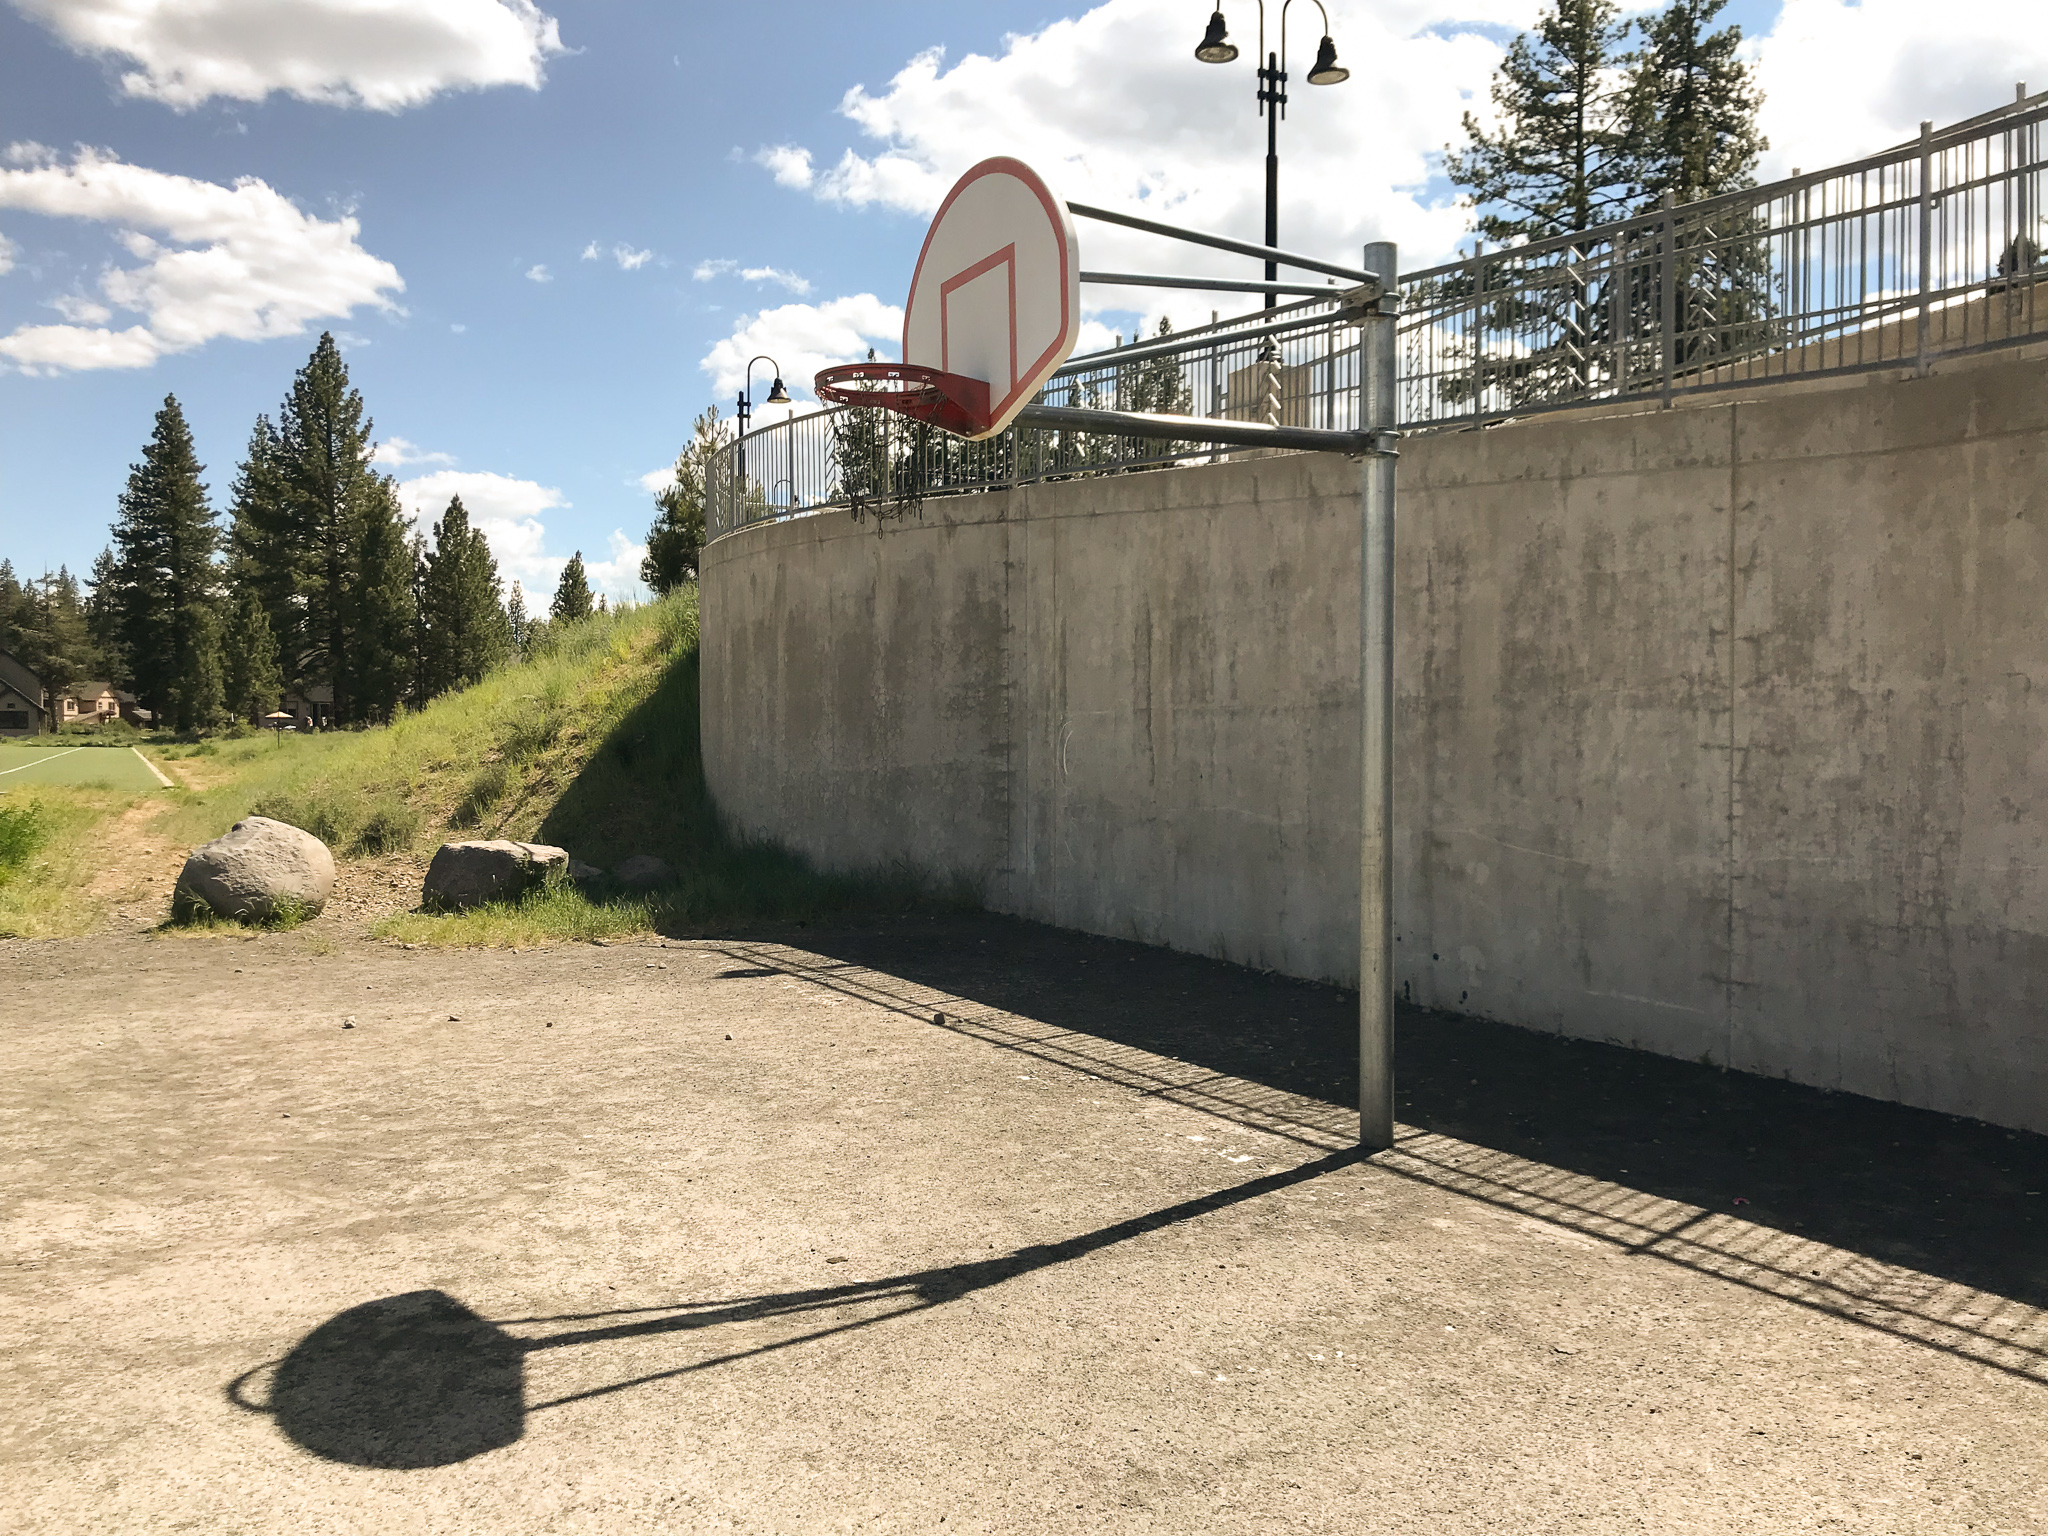 Outdoor basketball court in Truckee Claifornia